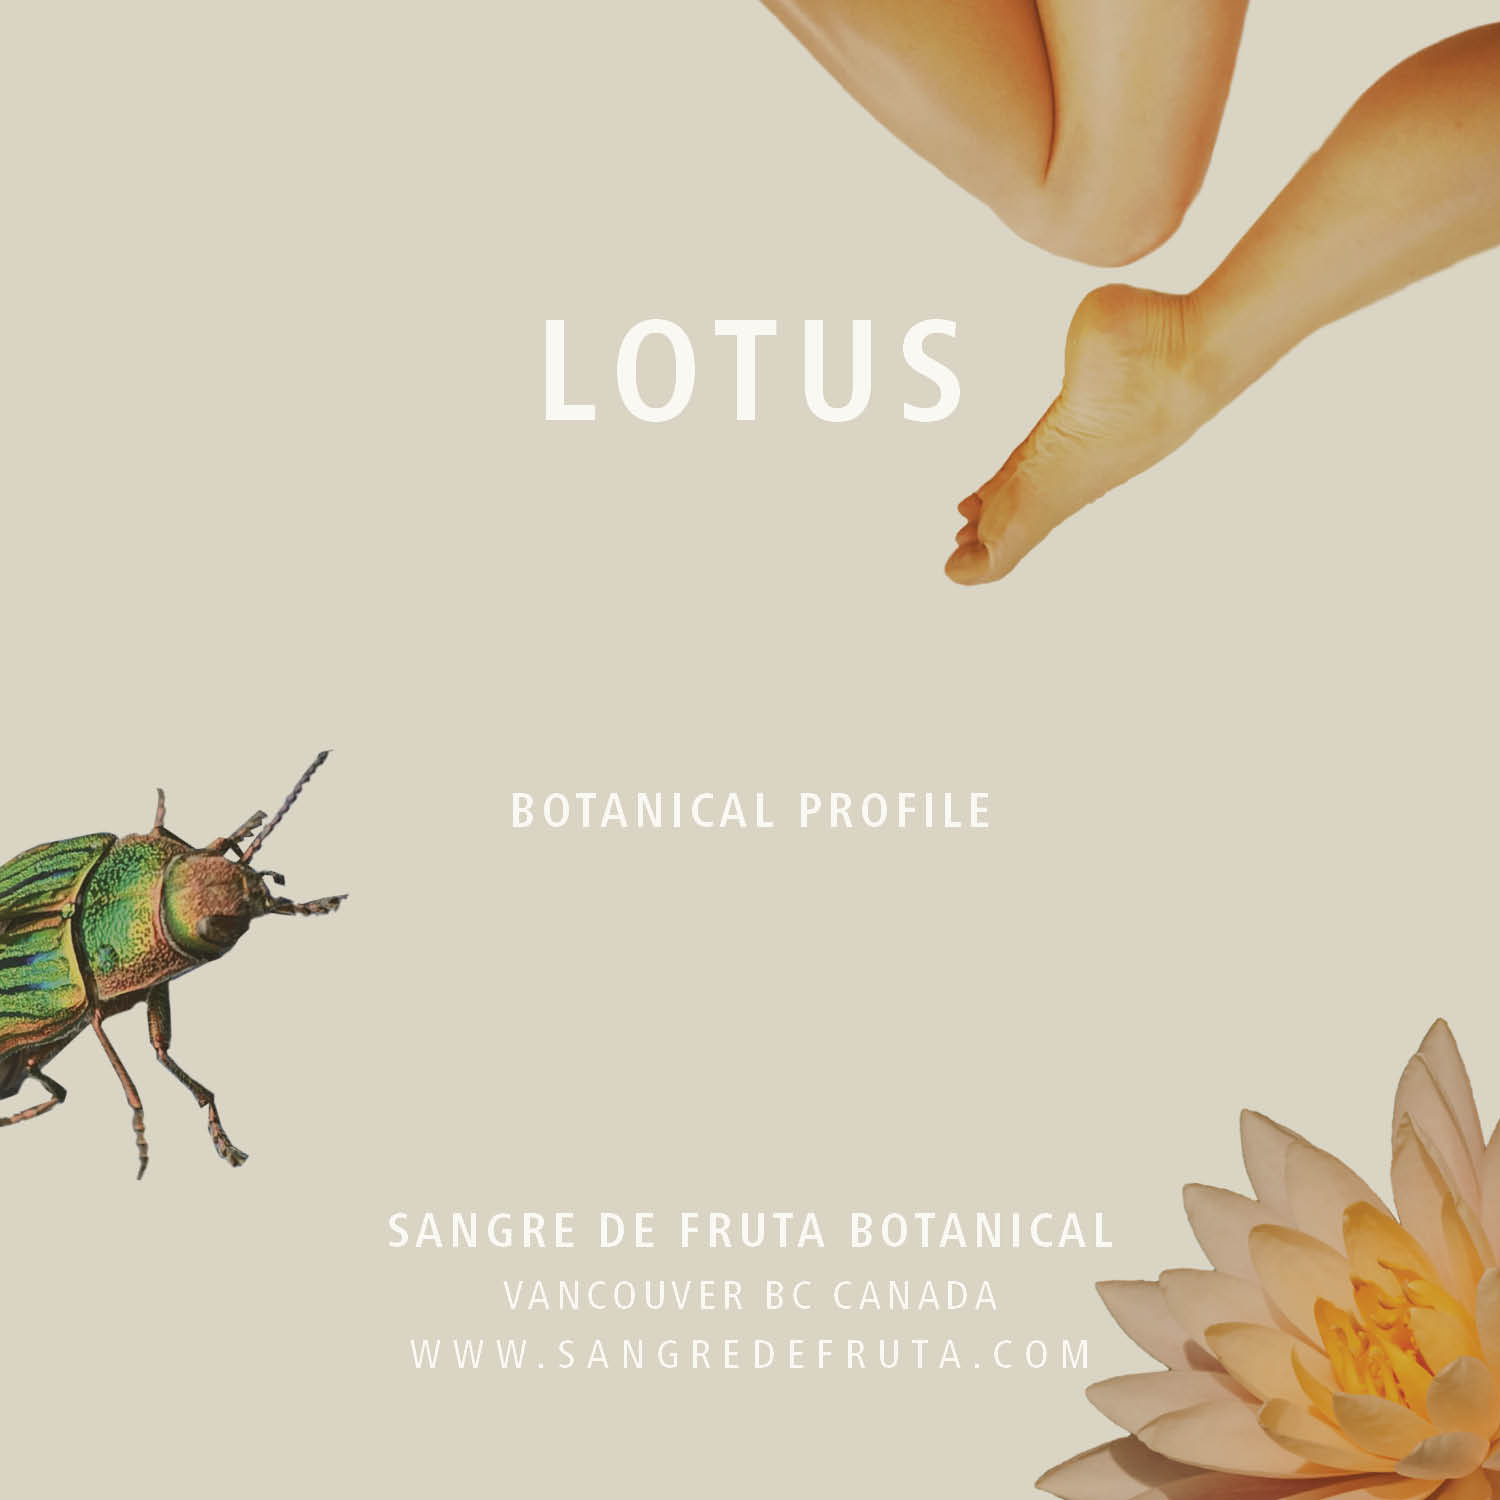 Lotus_Botanical-profile.jpg